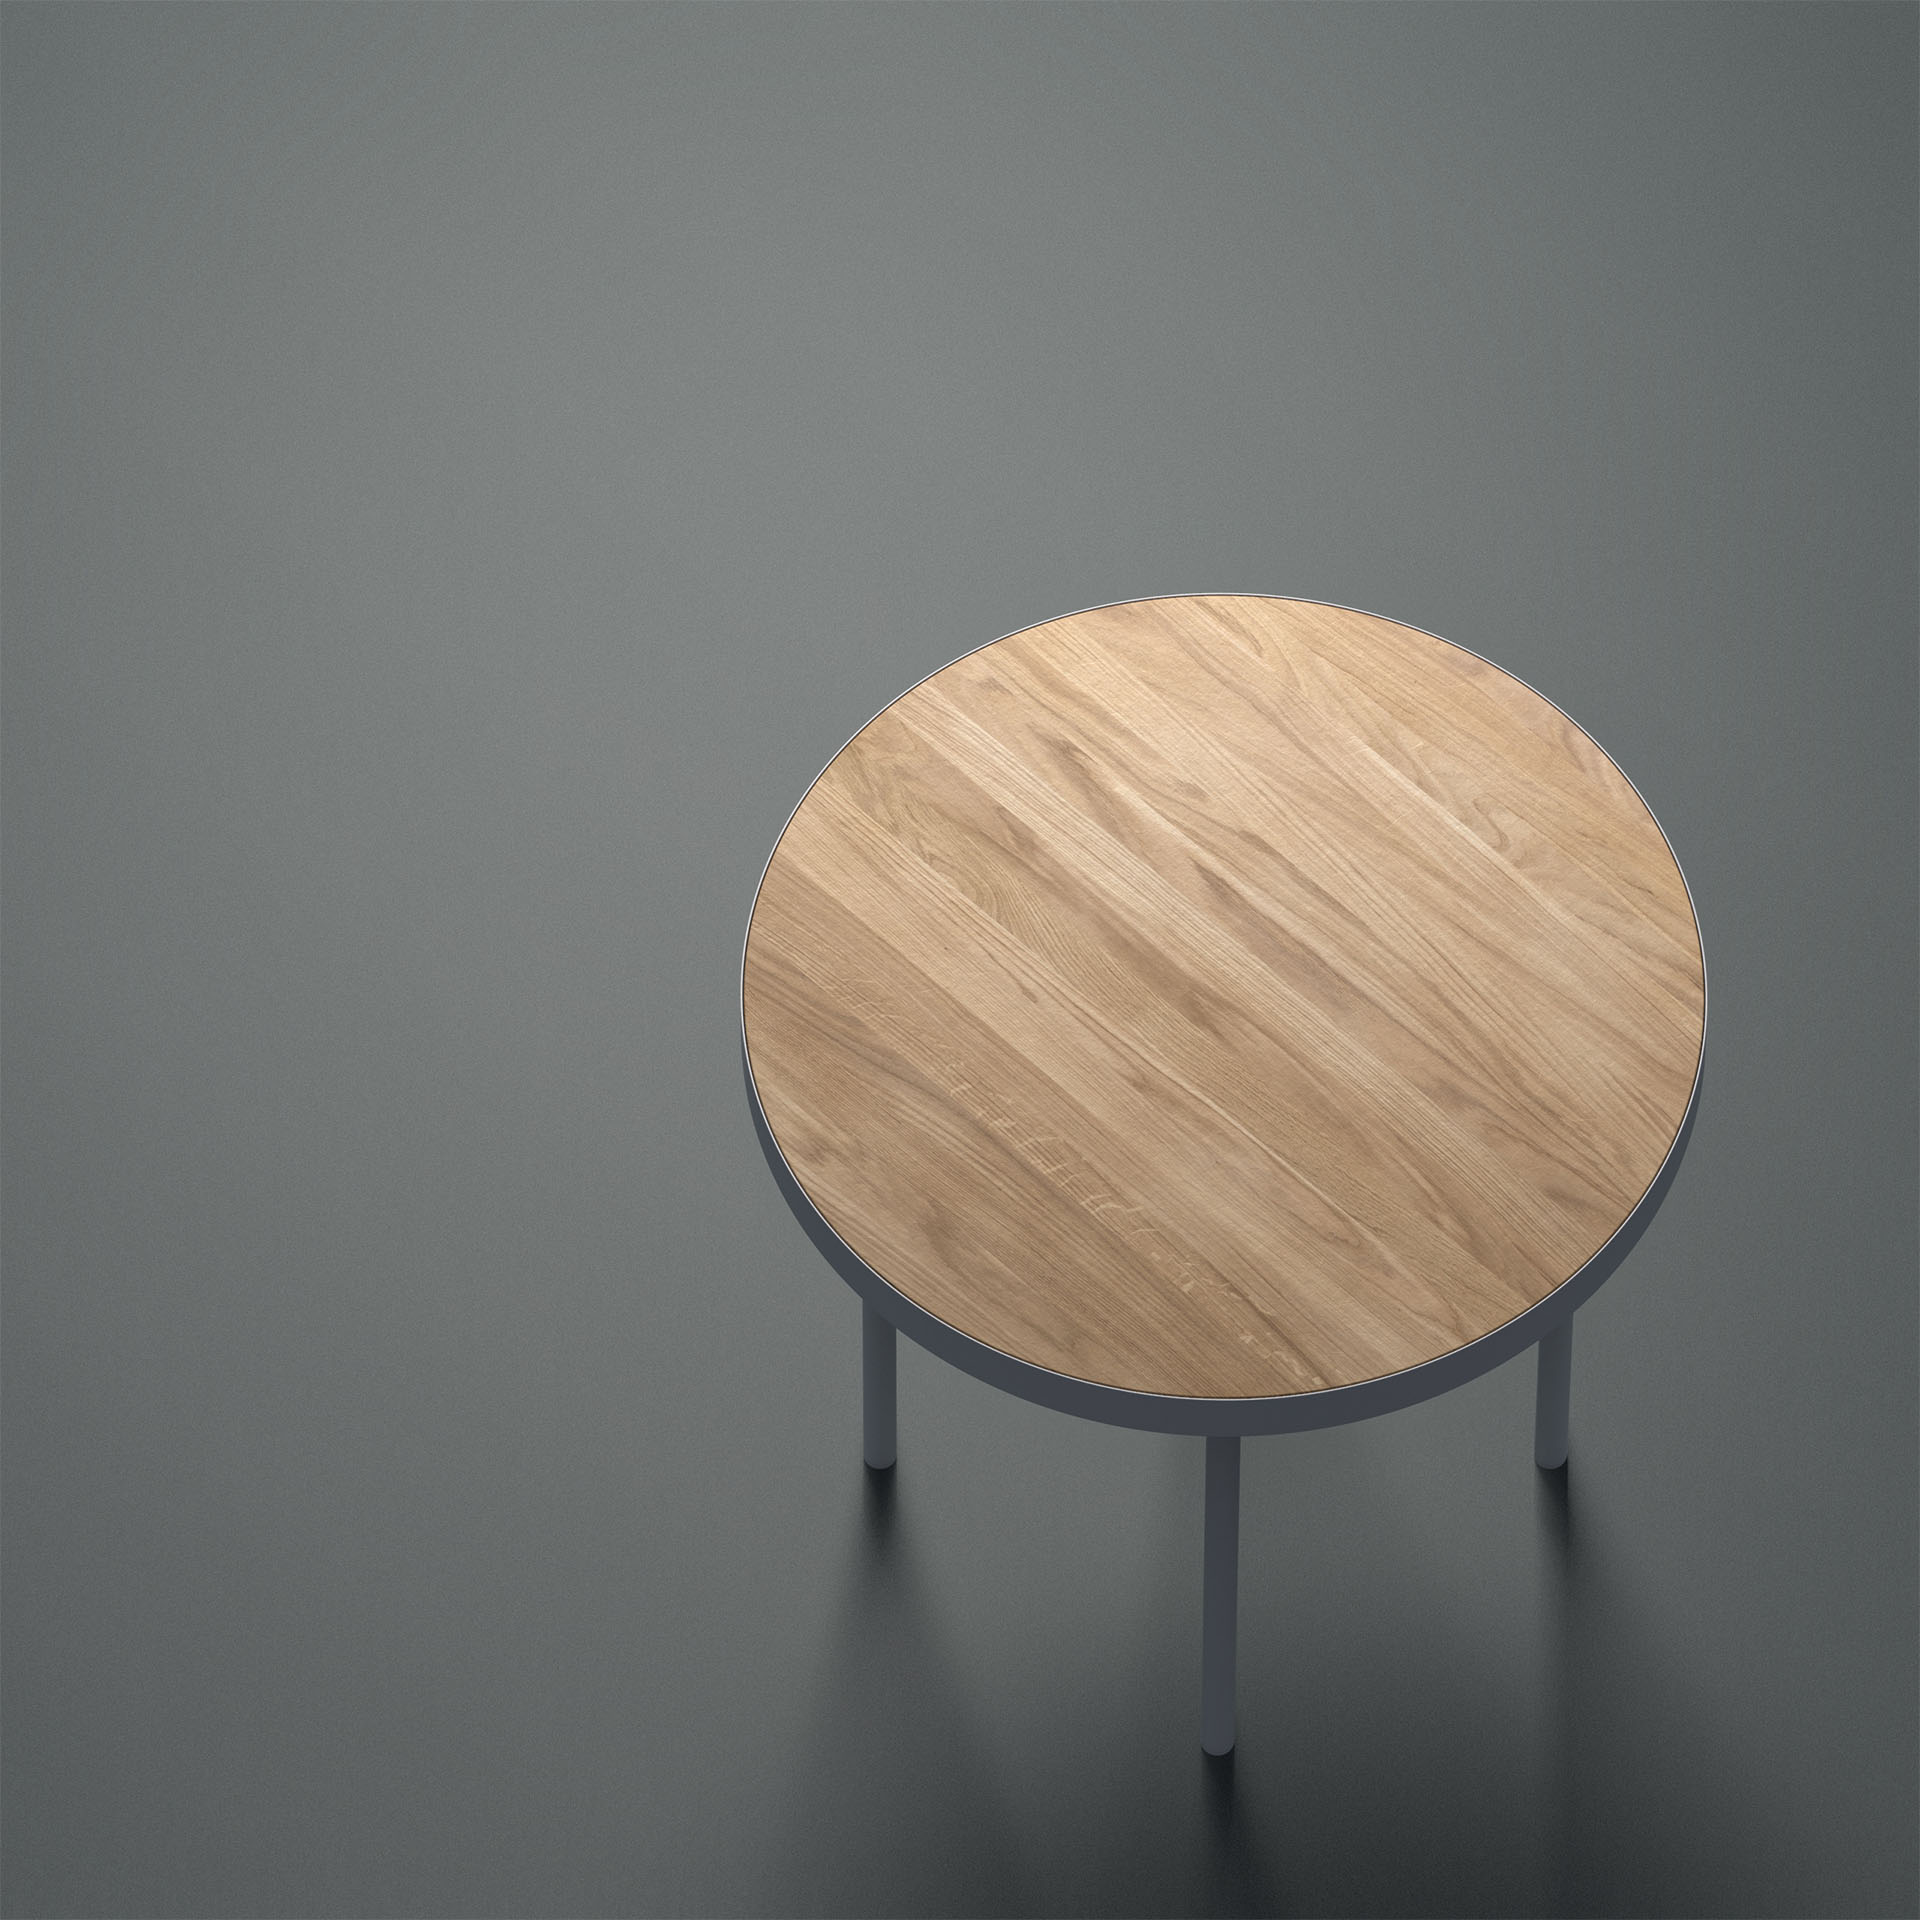 The unsettled side table from a high angle and dramatically lit, highlighting its wooden table top